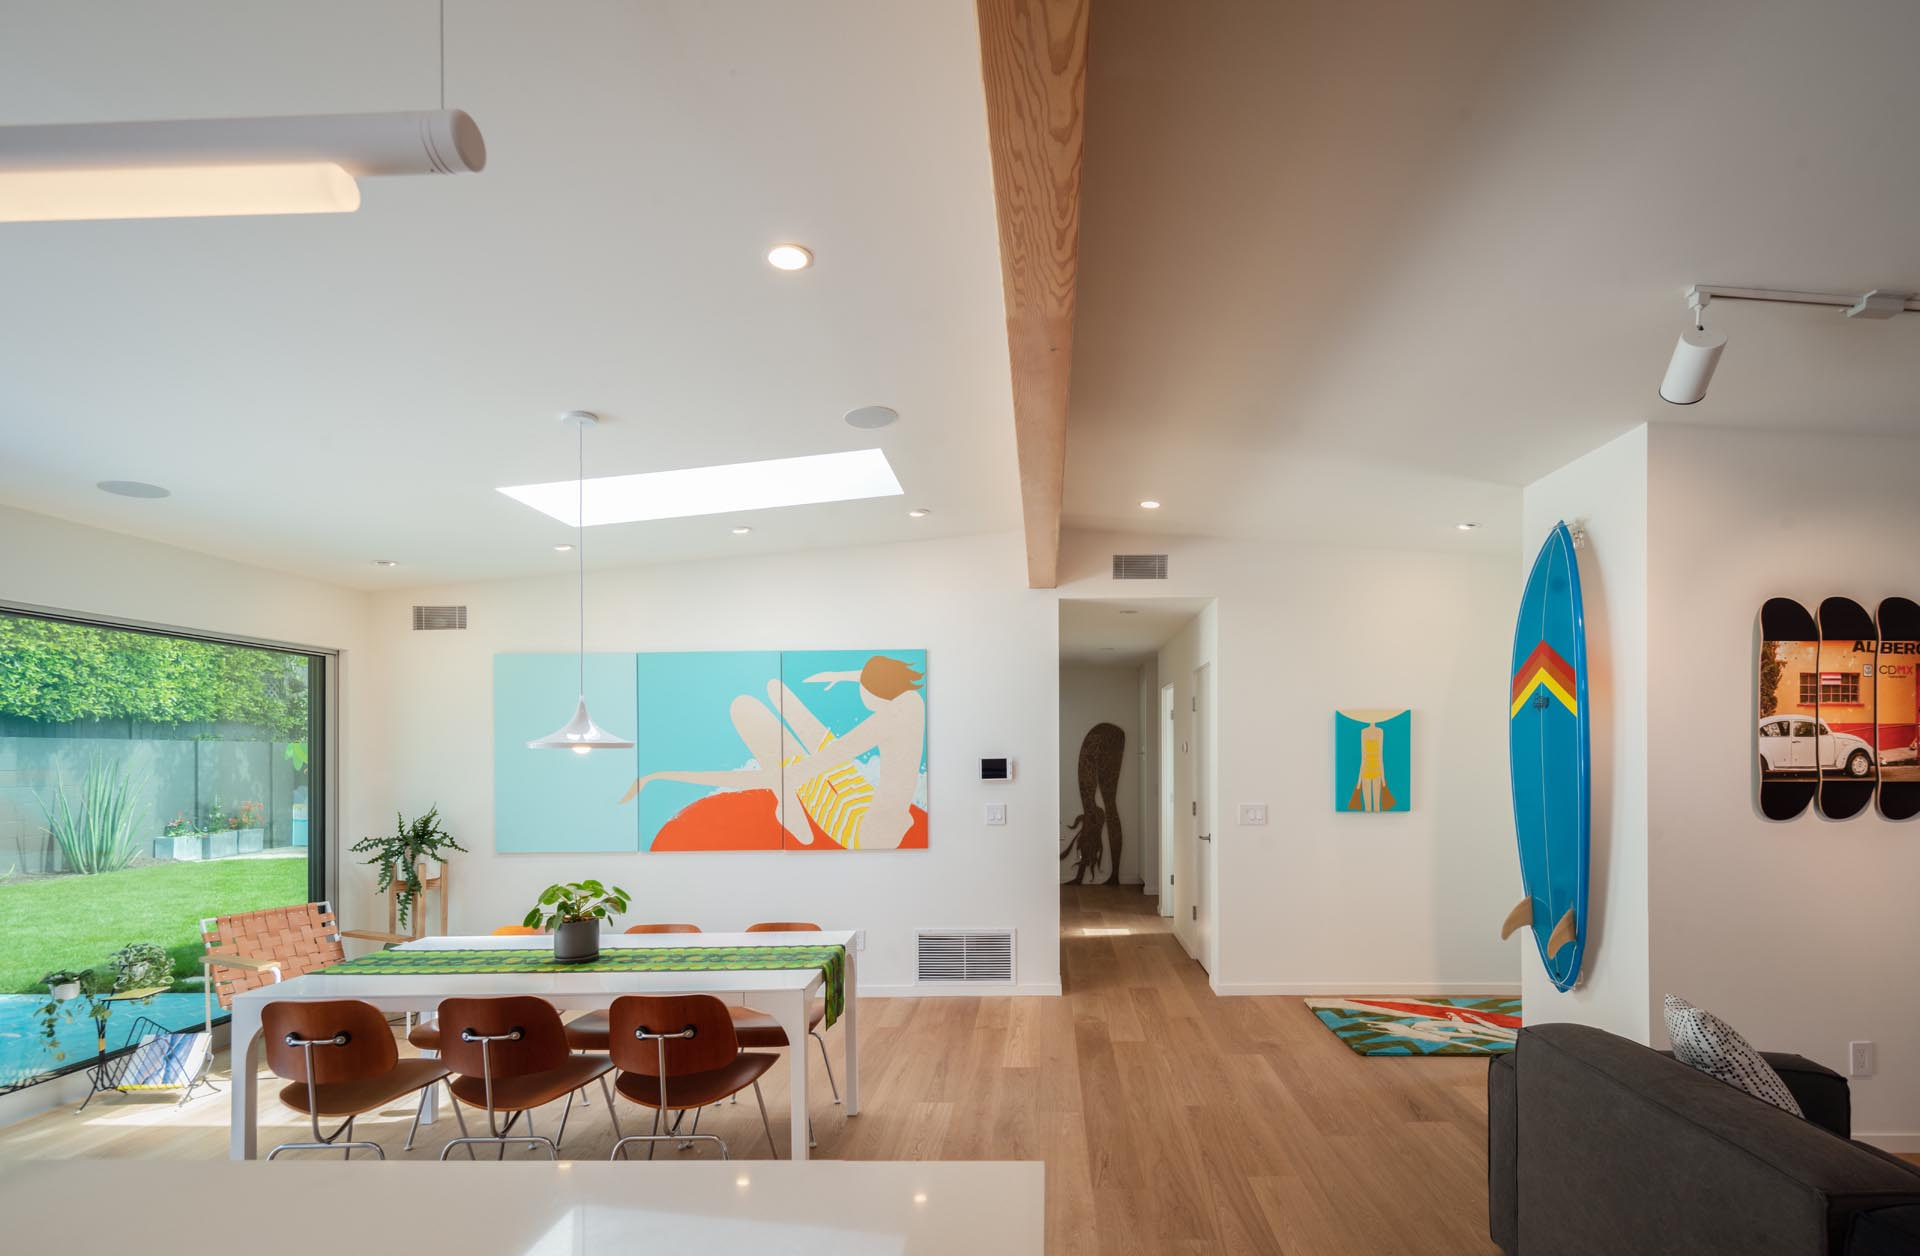 This modern open plan dining area has been furnished with a white dining table and a colorful 3-panel art piece on the wall. A skylight adds natural light to the space.